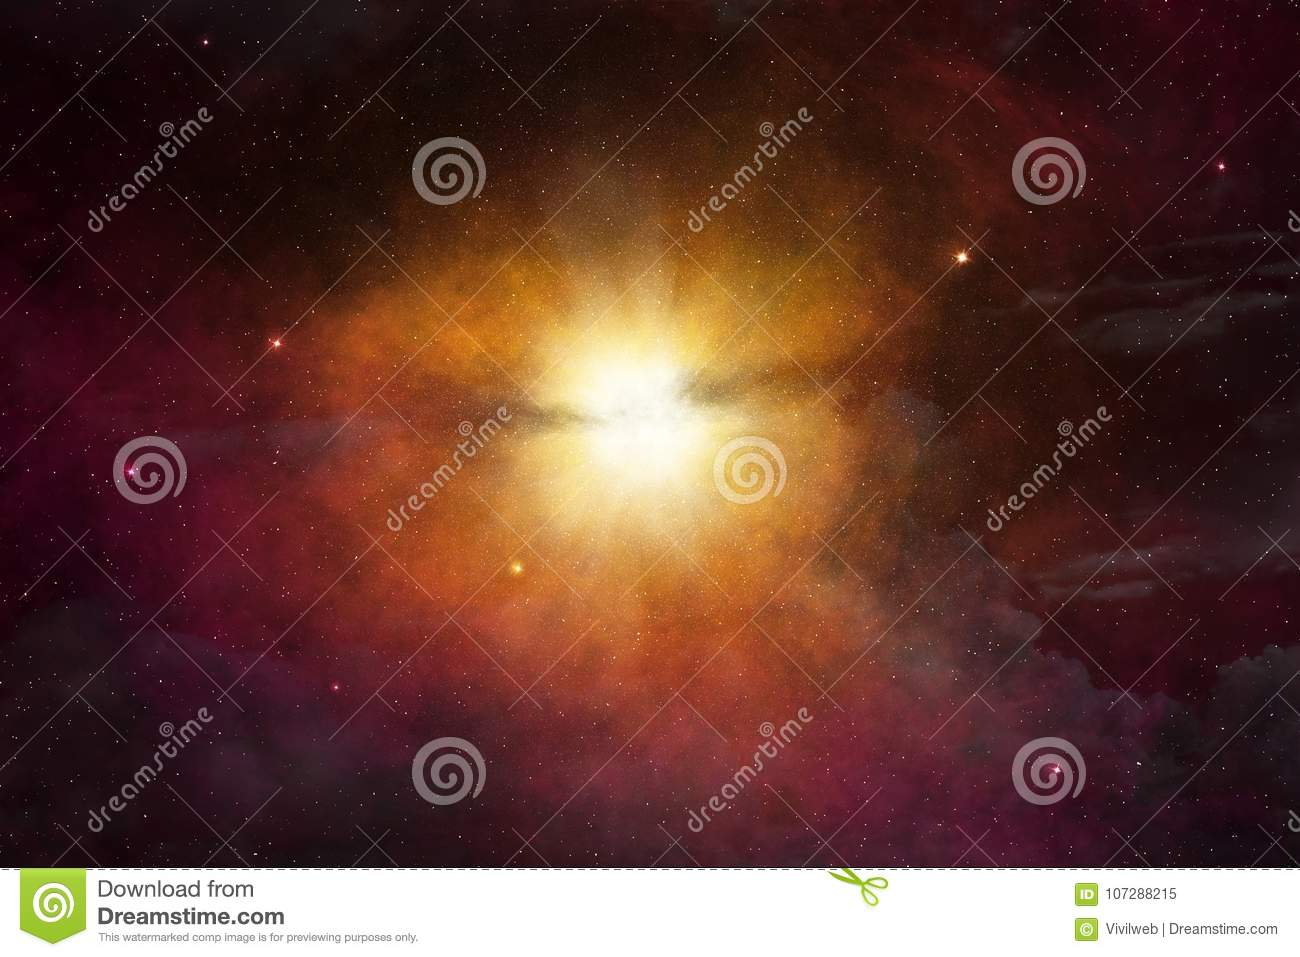 Star light glowing in space